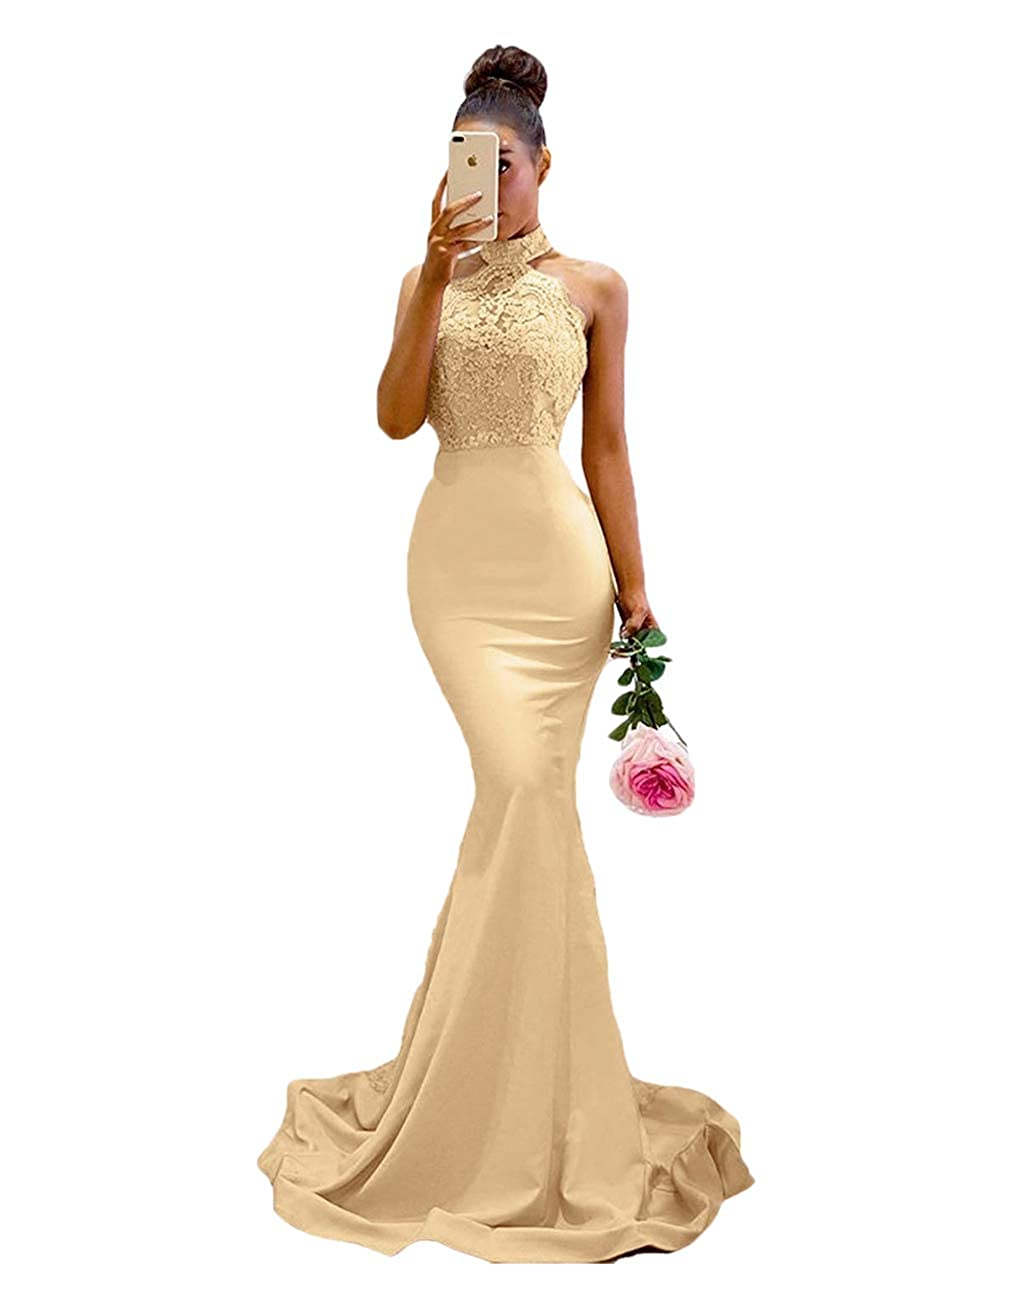 Champagne BridalAffair Women's Halter Neck Mermaid Appliques Lace Long Bridesmaid Dress Formal Party Gown for Wedding